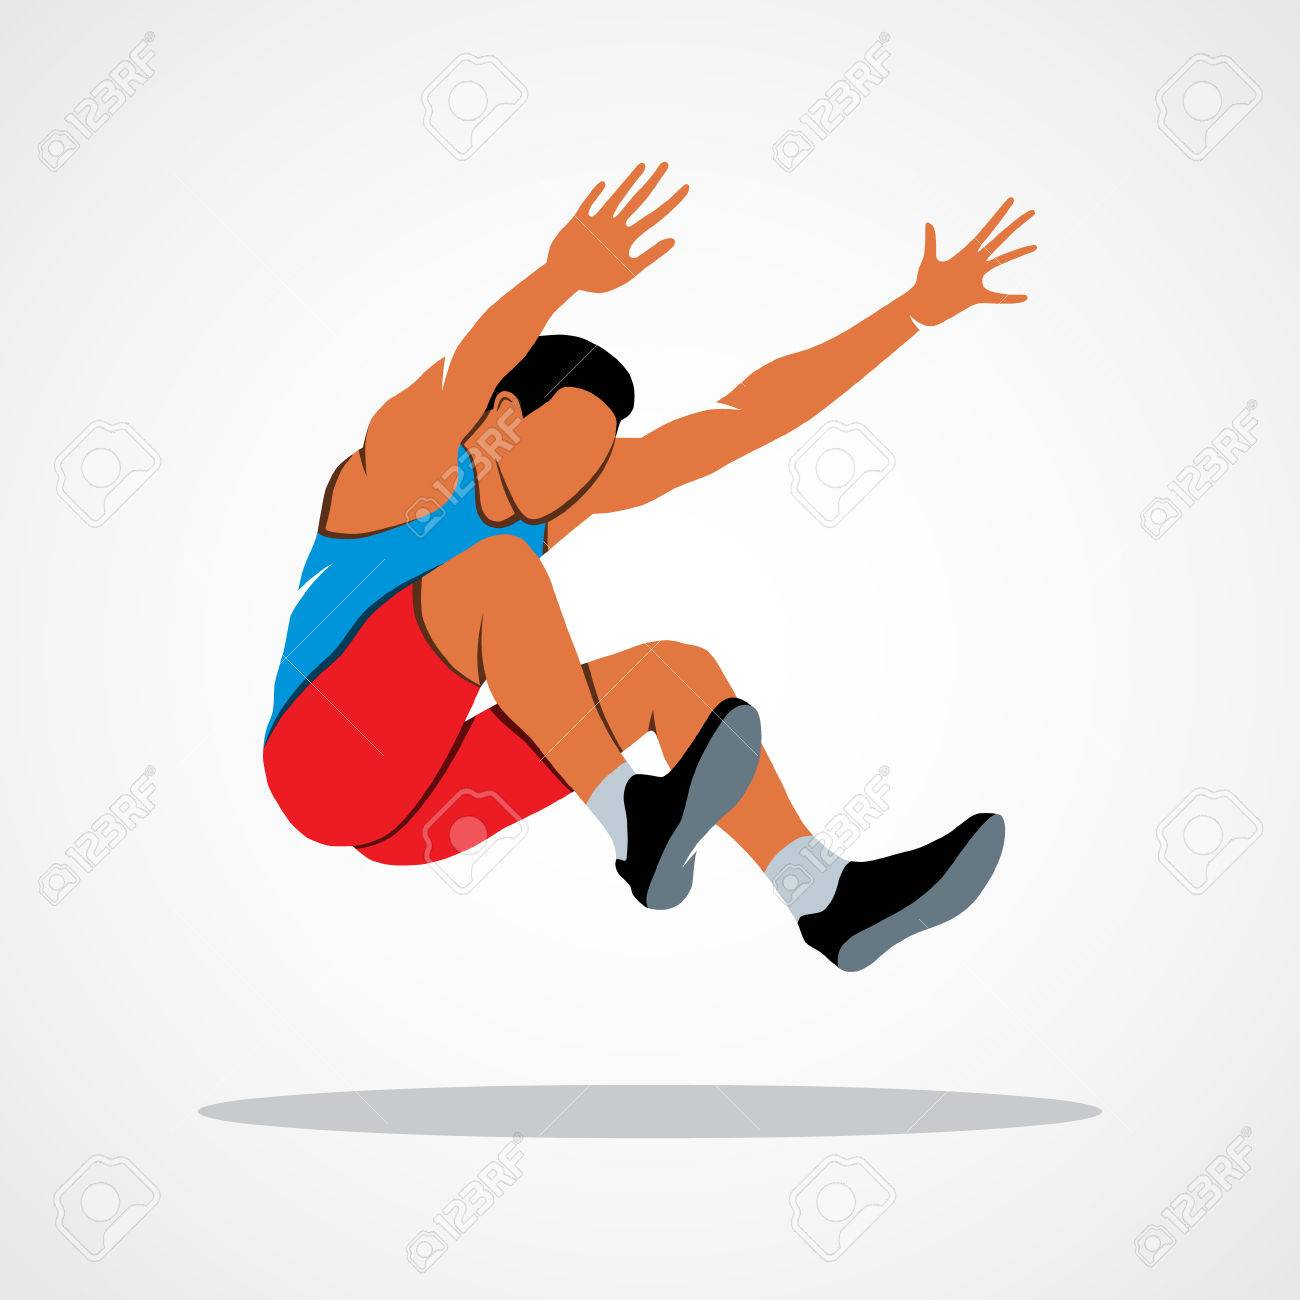 Illustration long jump trajectory the athlete jumps branding identity corporate logo design template isolated on a white background photo illustration